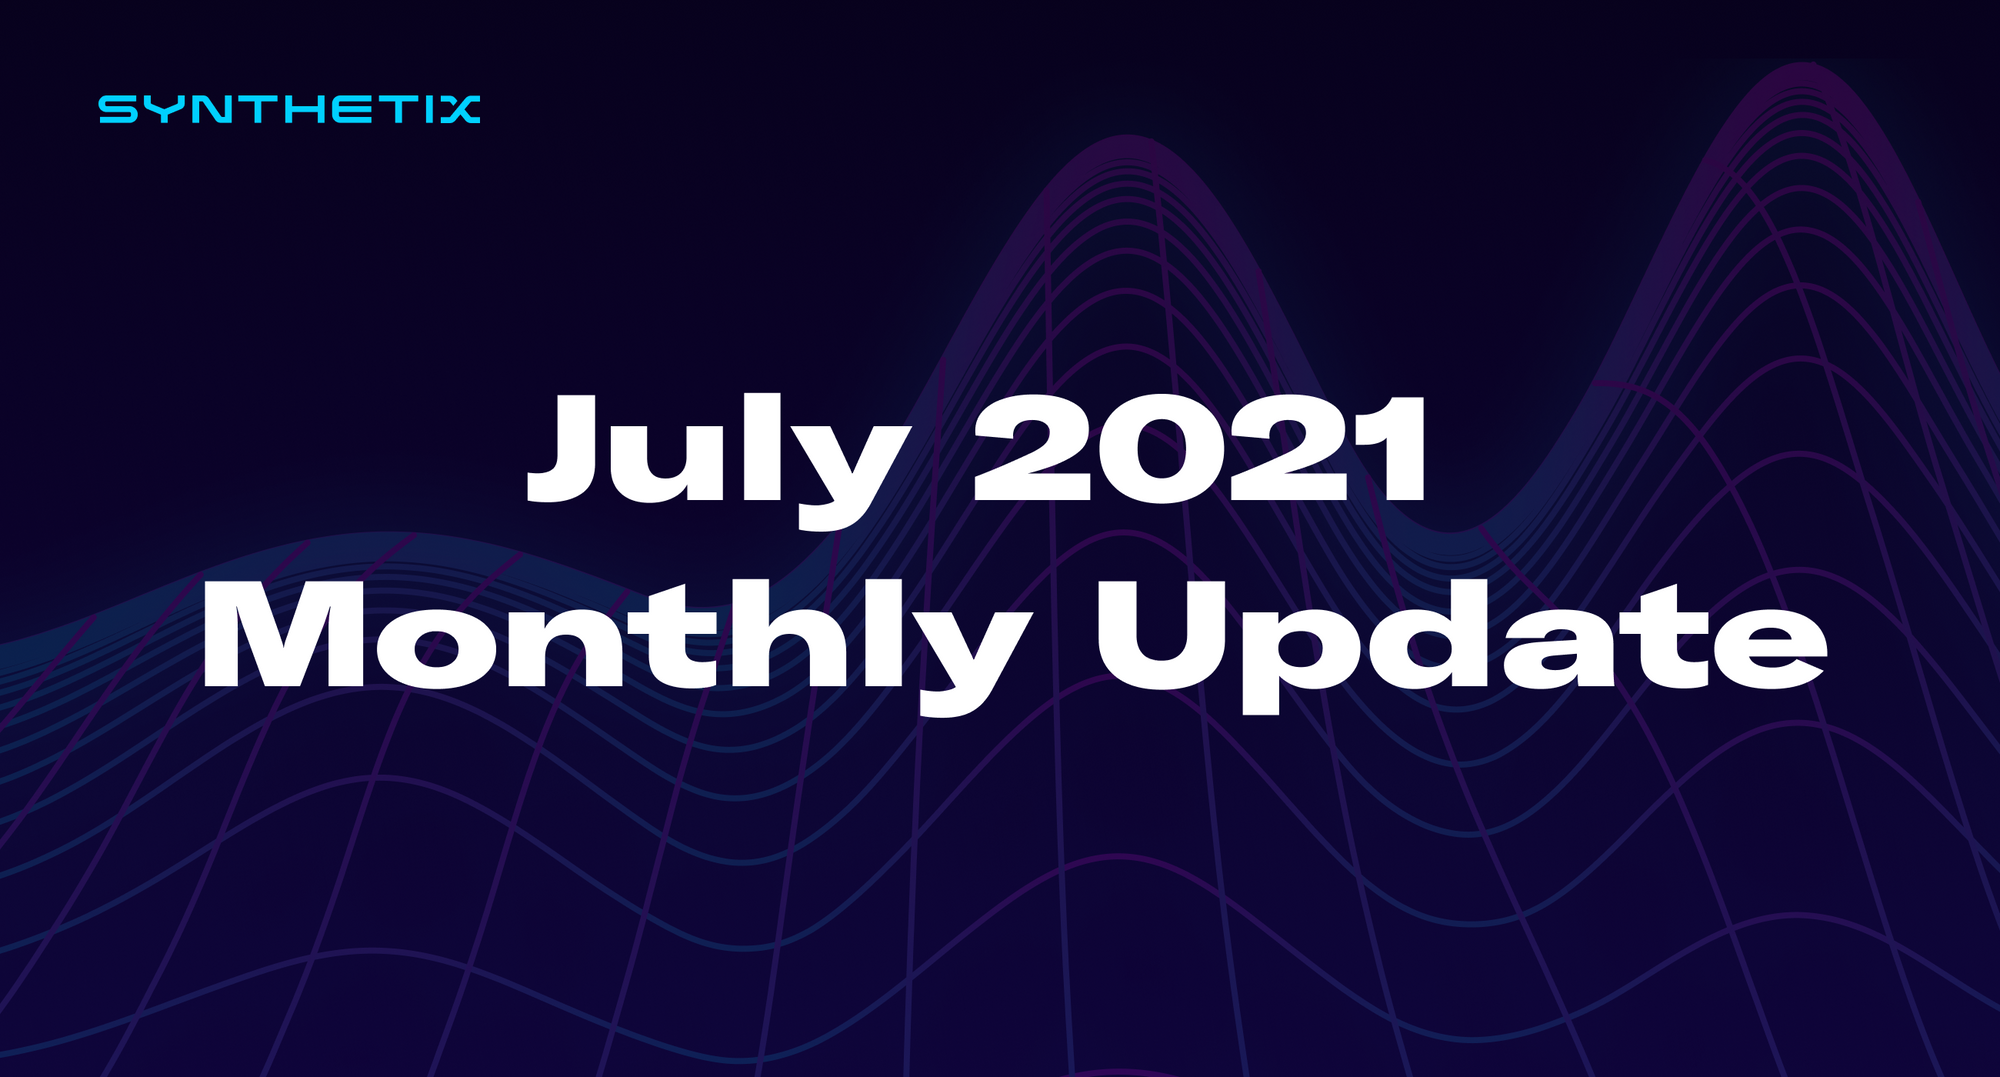 July 2021 Monthly Update